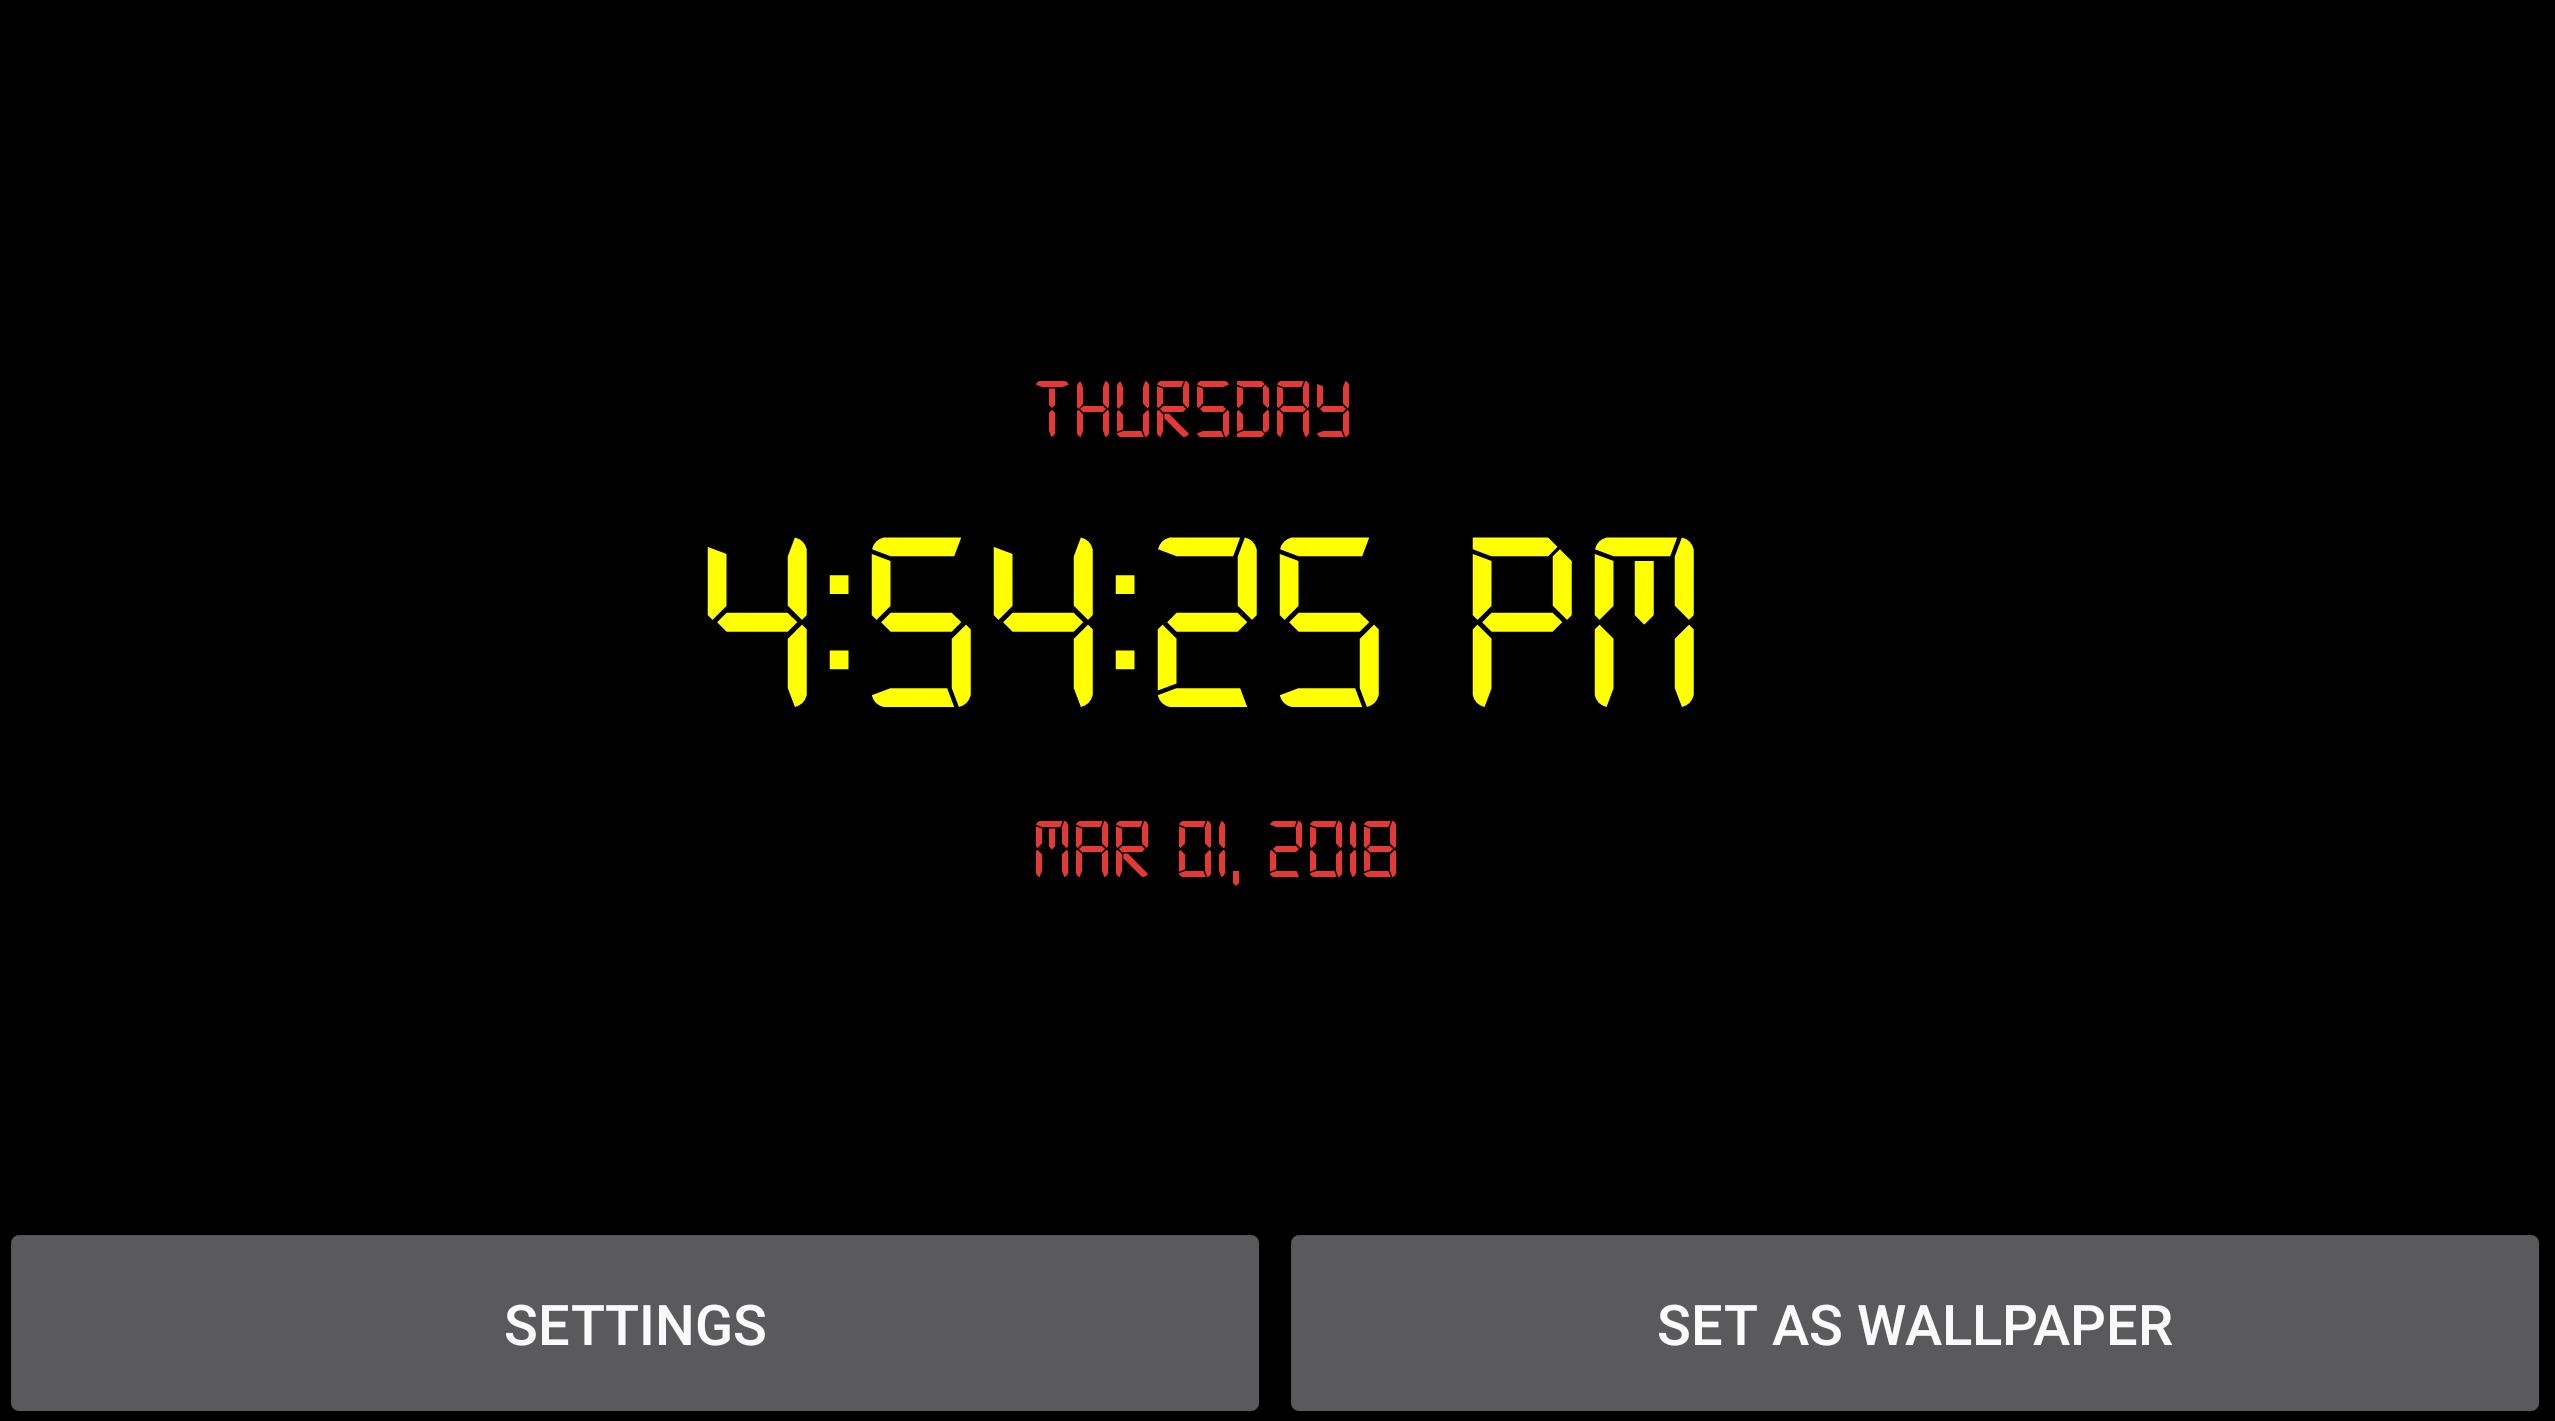 Digital Clock Live Wallpaper for Android - APK Download